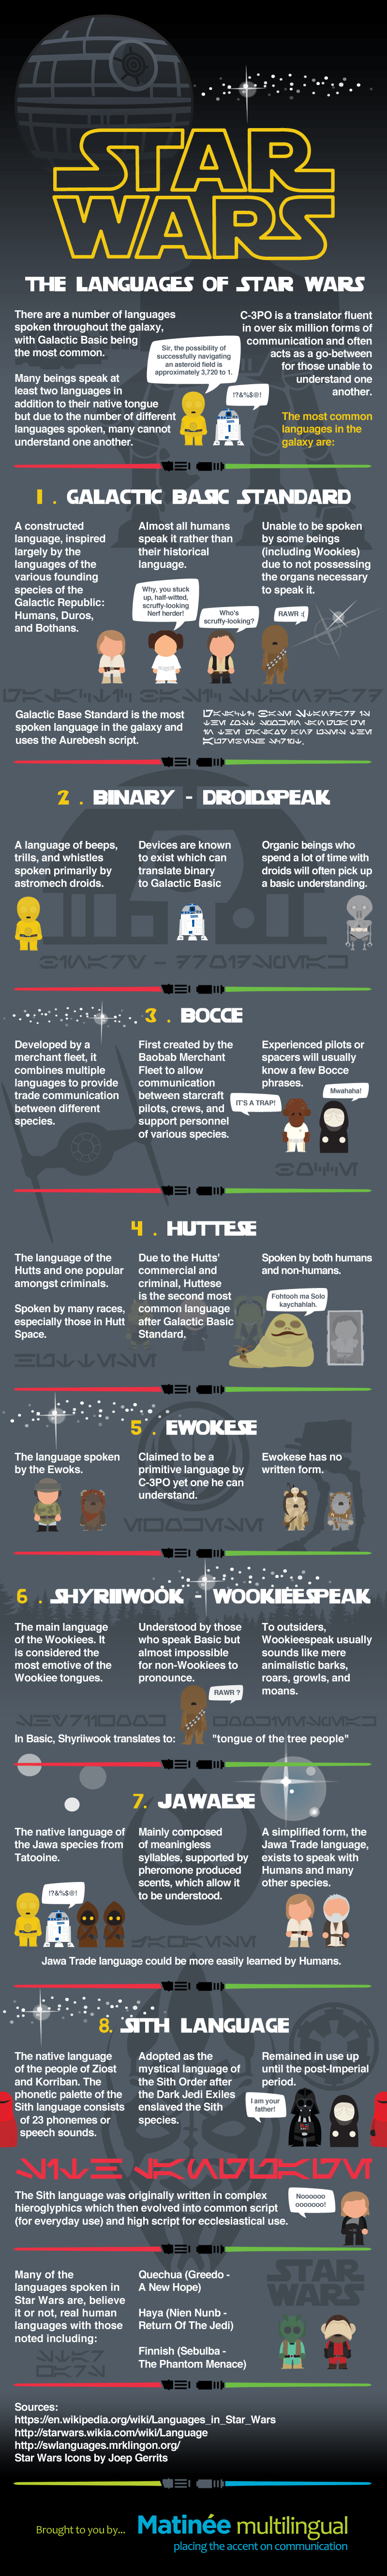 The Languages of Star Wars Infographic Design